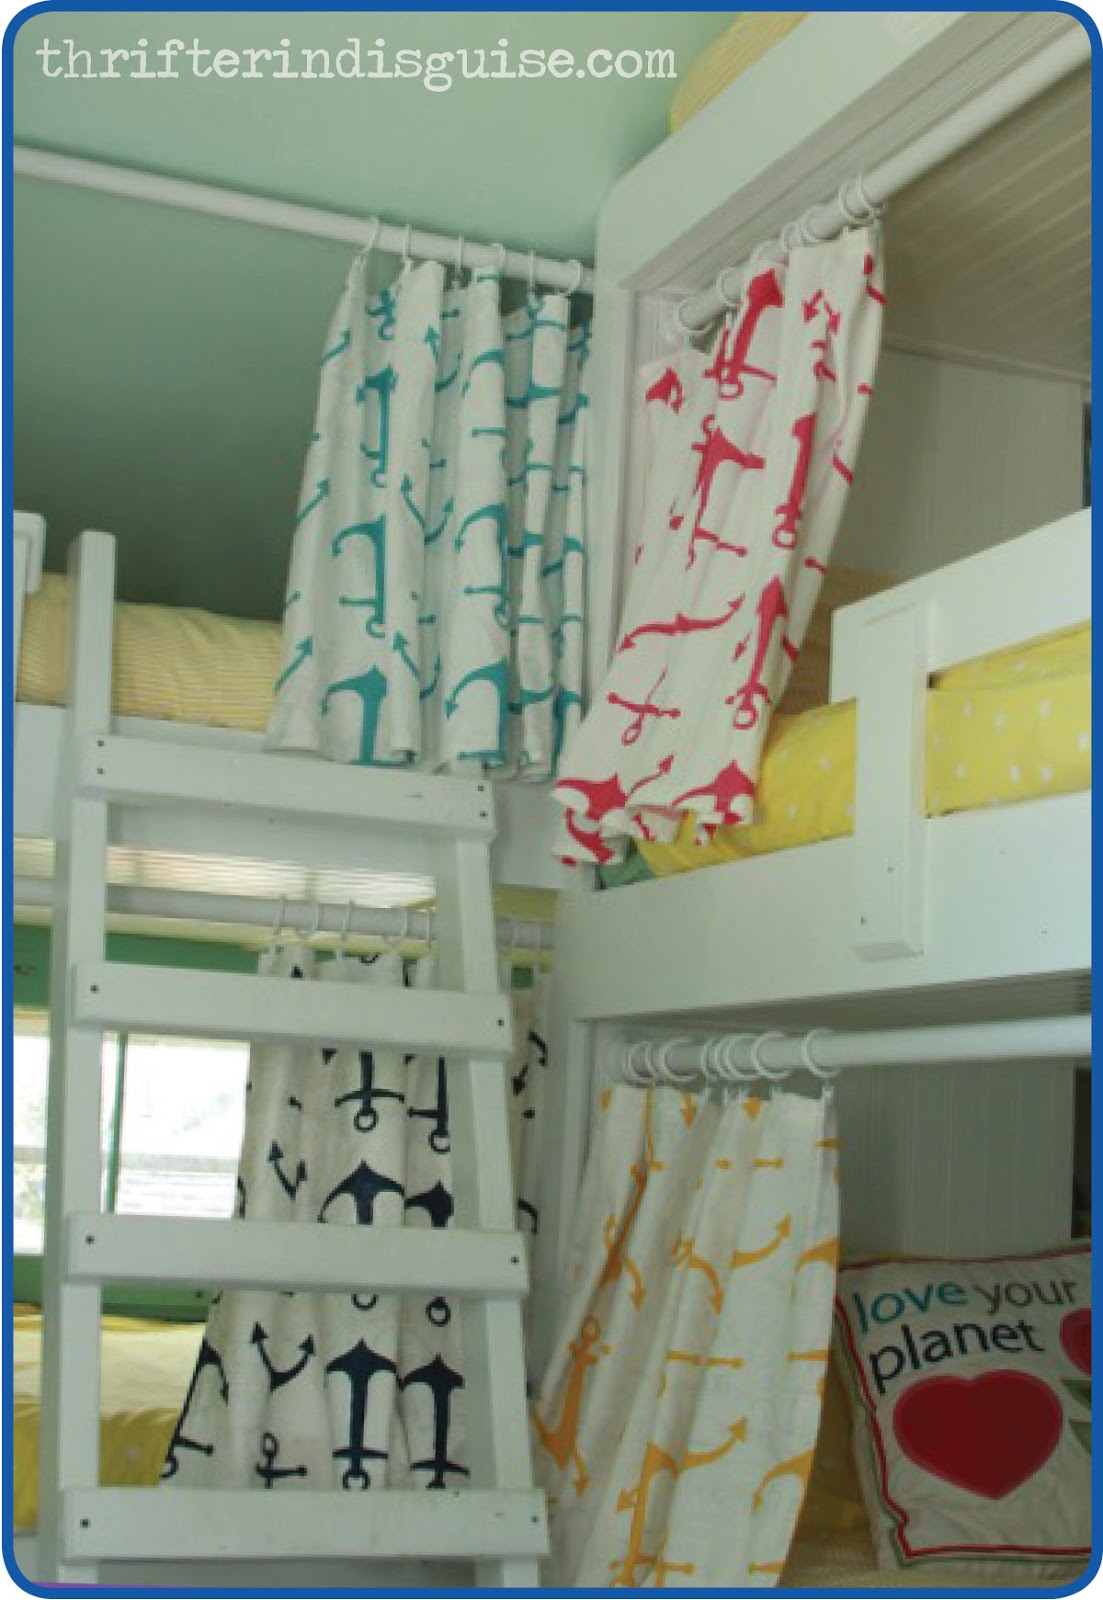 Bed Divider Design Ideas with Bunk Bed Curtains: Bunk Beds With Tents | Bunk Bed Canopy Tent | Bunk Bed Curtains